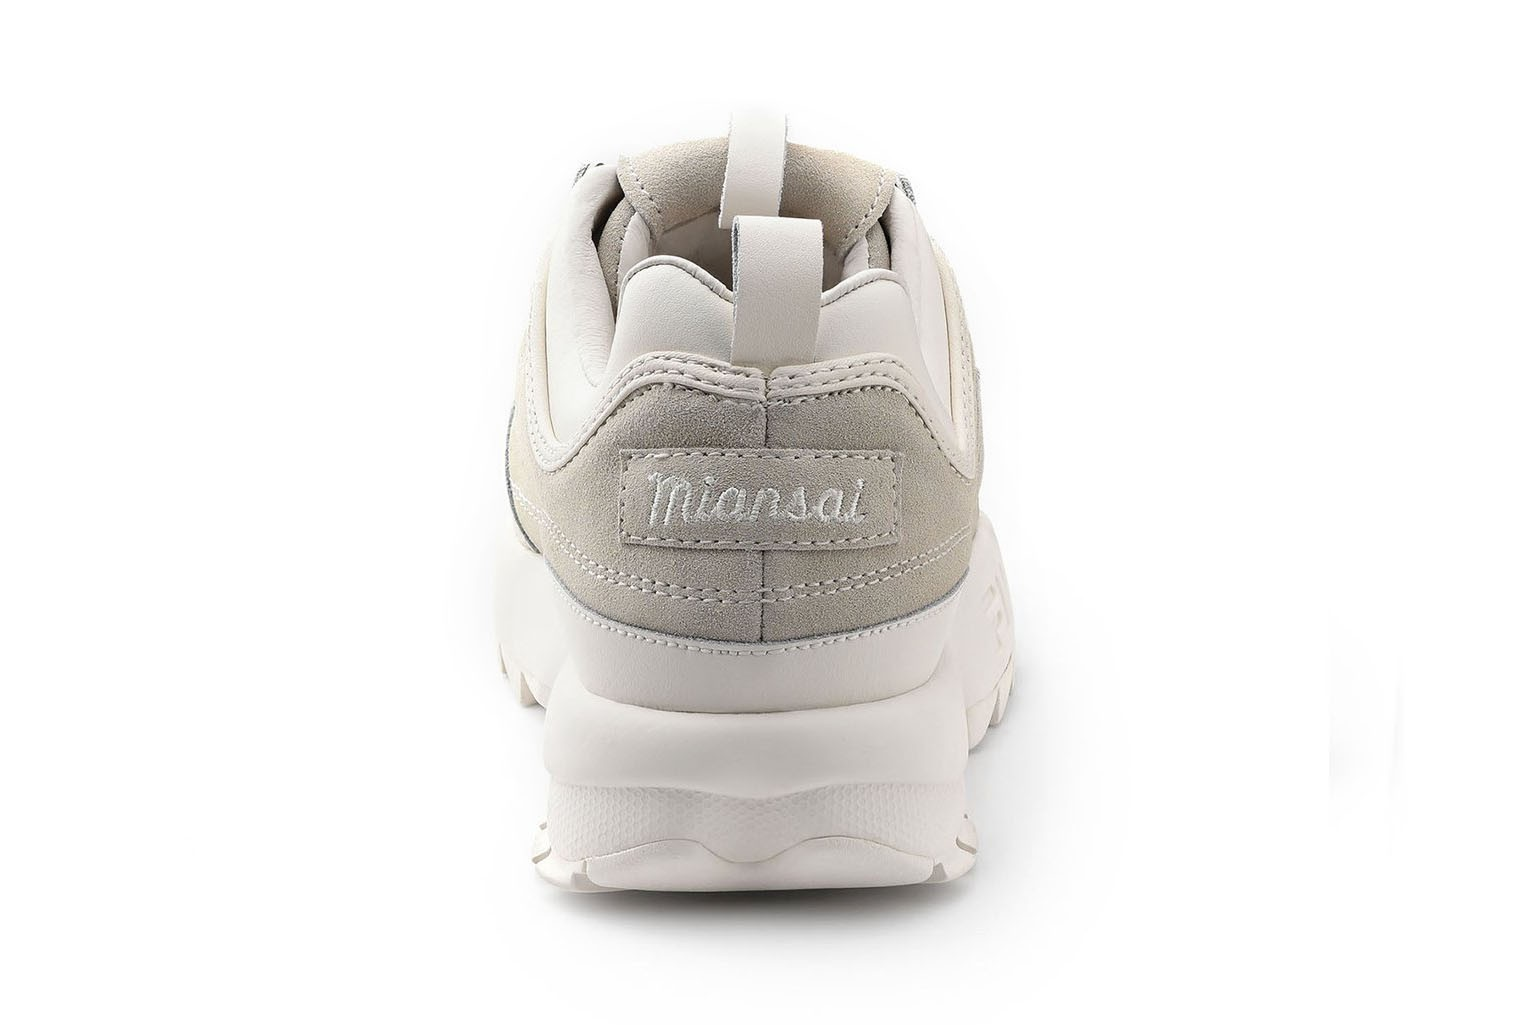 Miansai x FILA Sneaker Collaboration Targa Disruptor